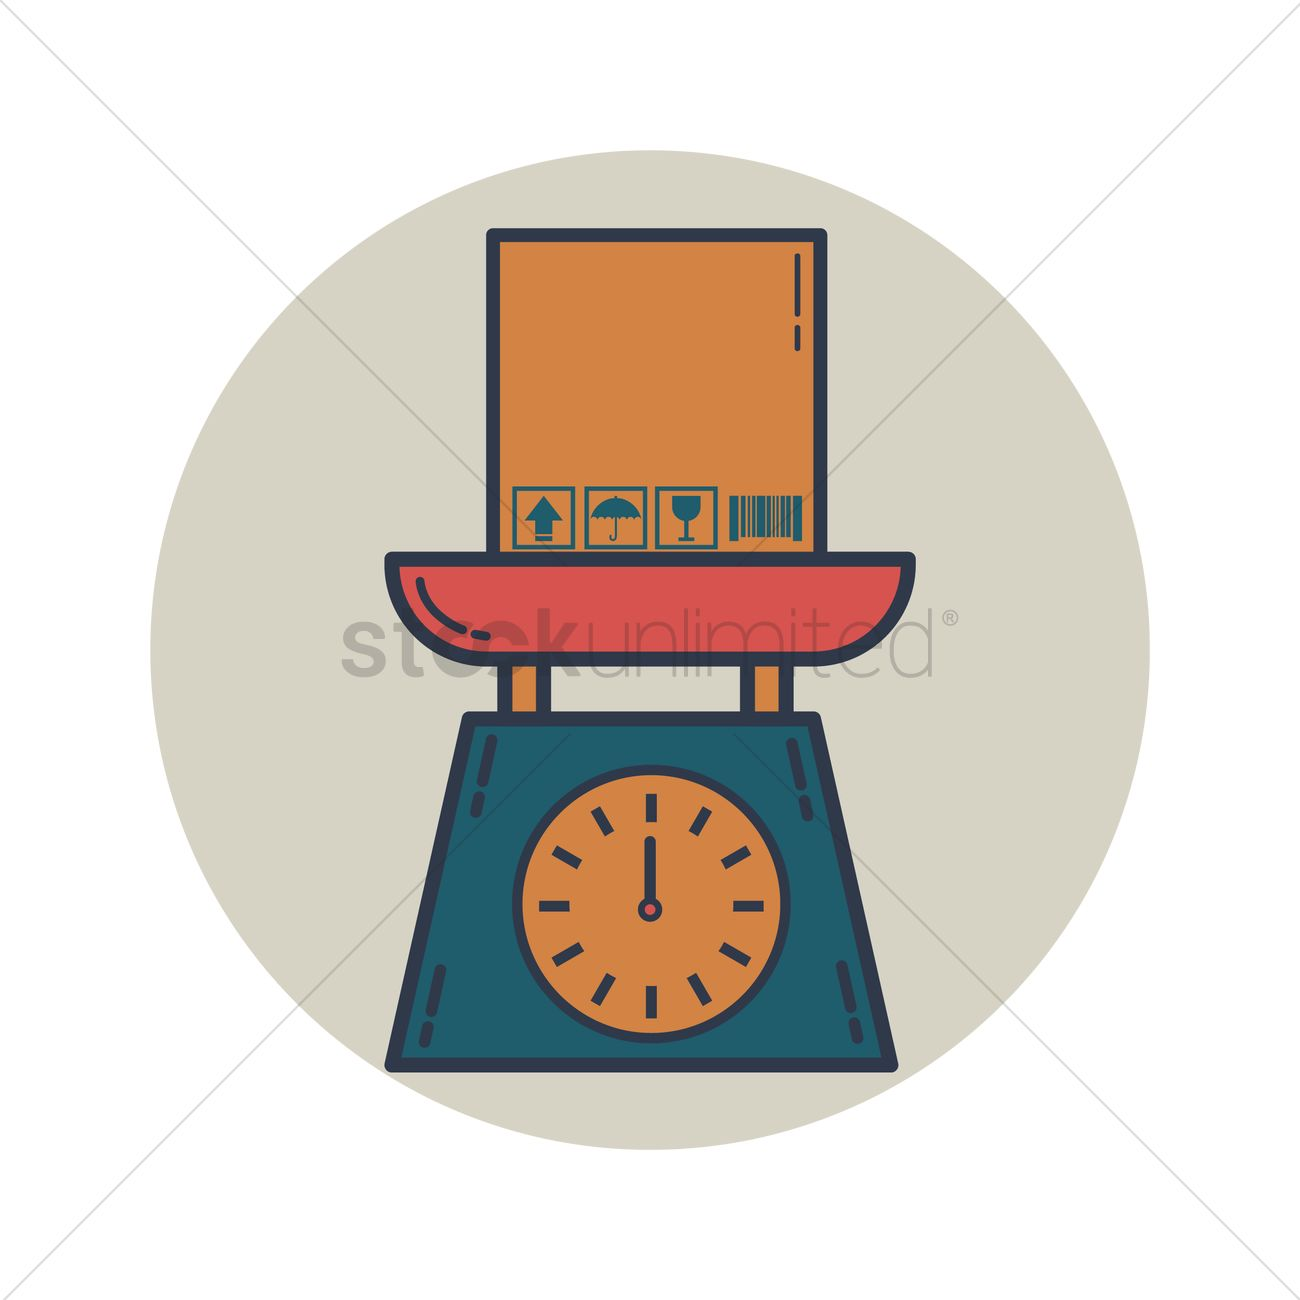 Cardboard box with weighing scale vector image 1306090 cardboard box with weighing scale vector graphic biocorpaavc Choice Image